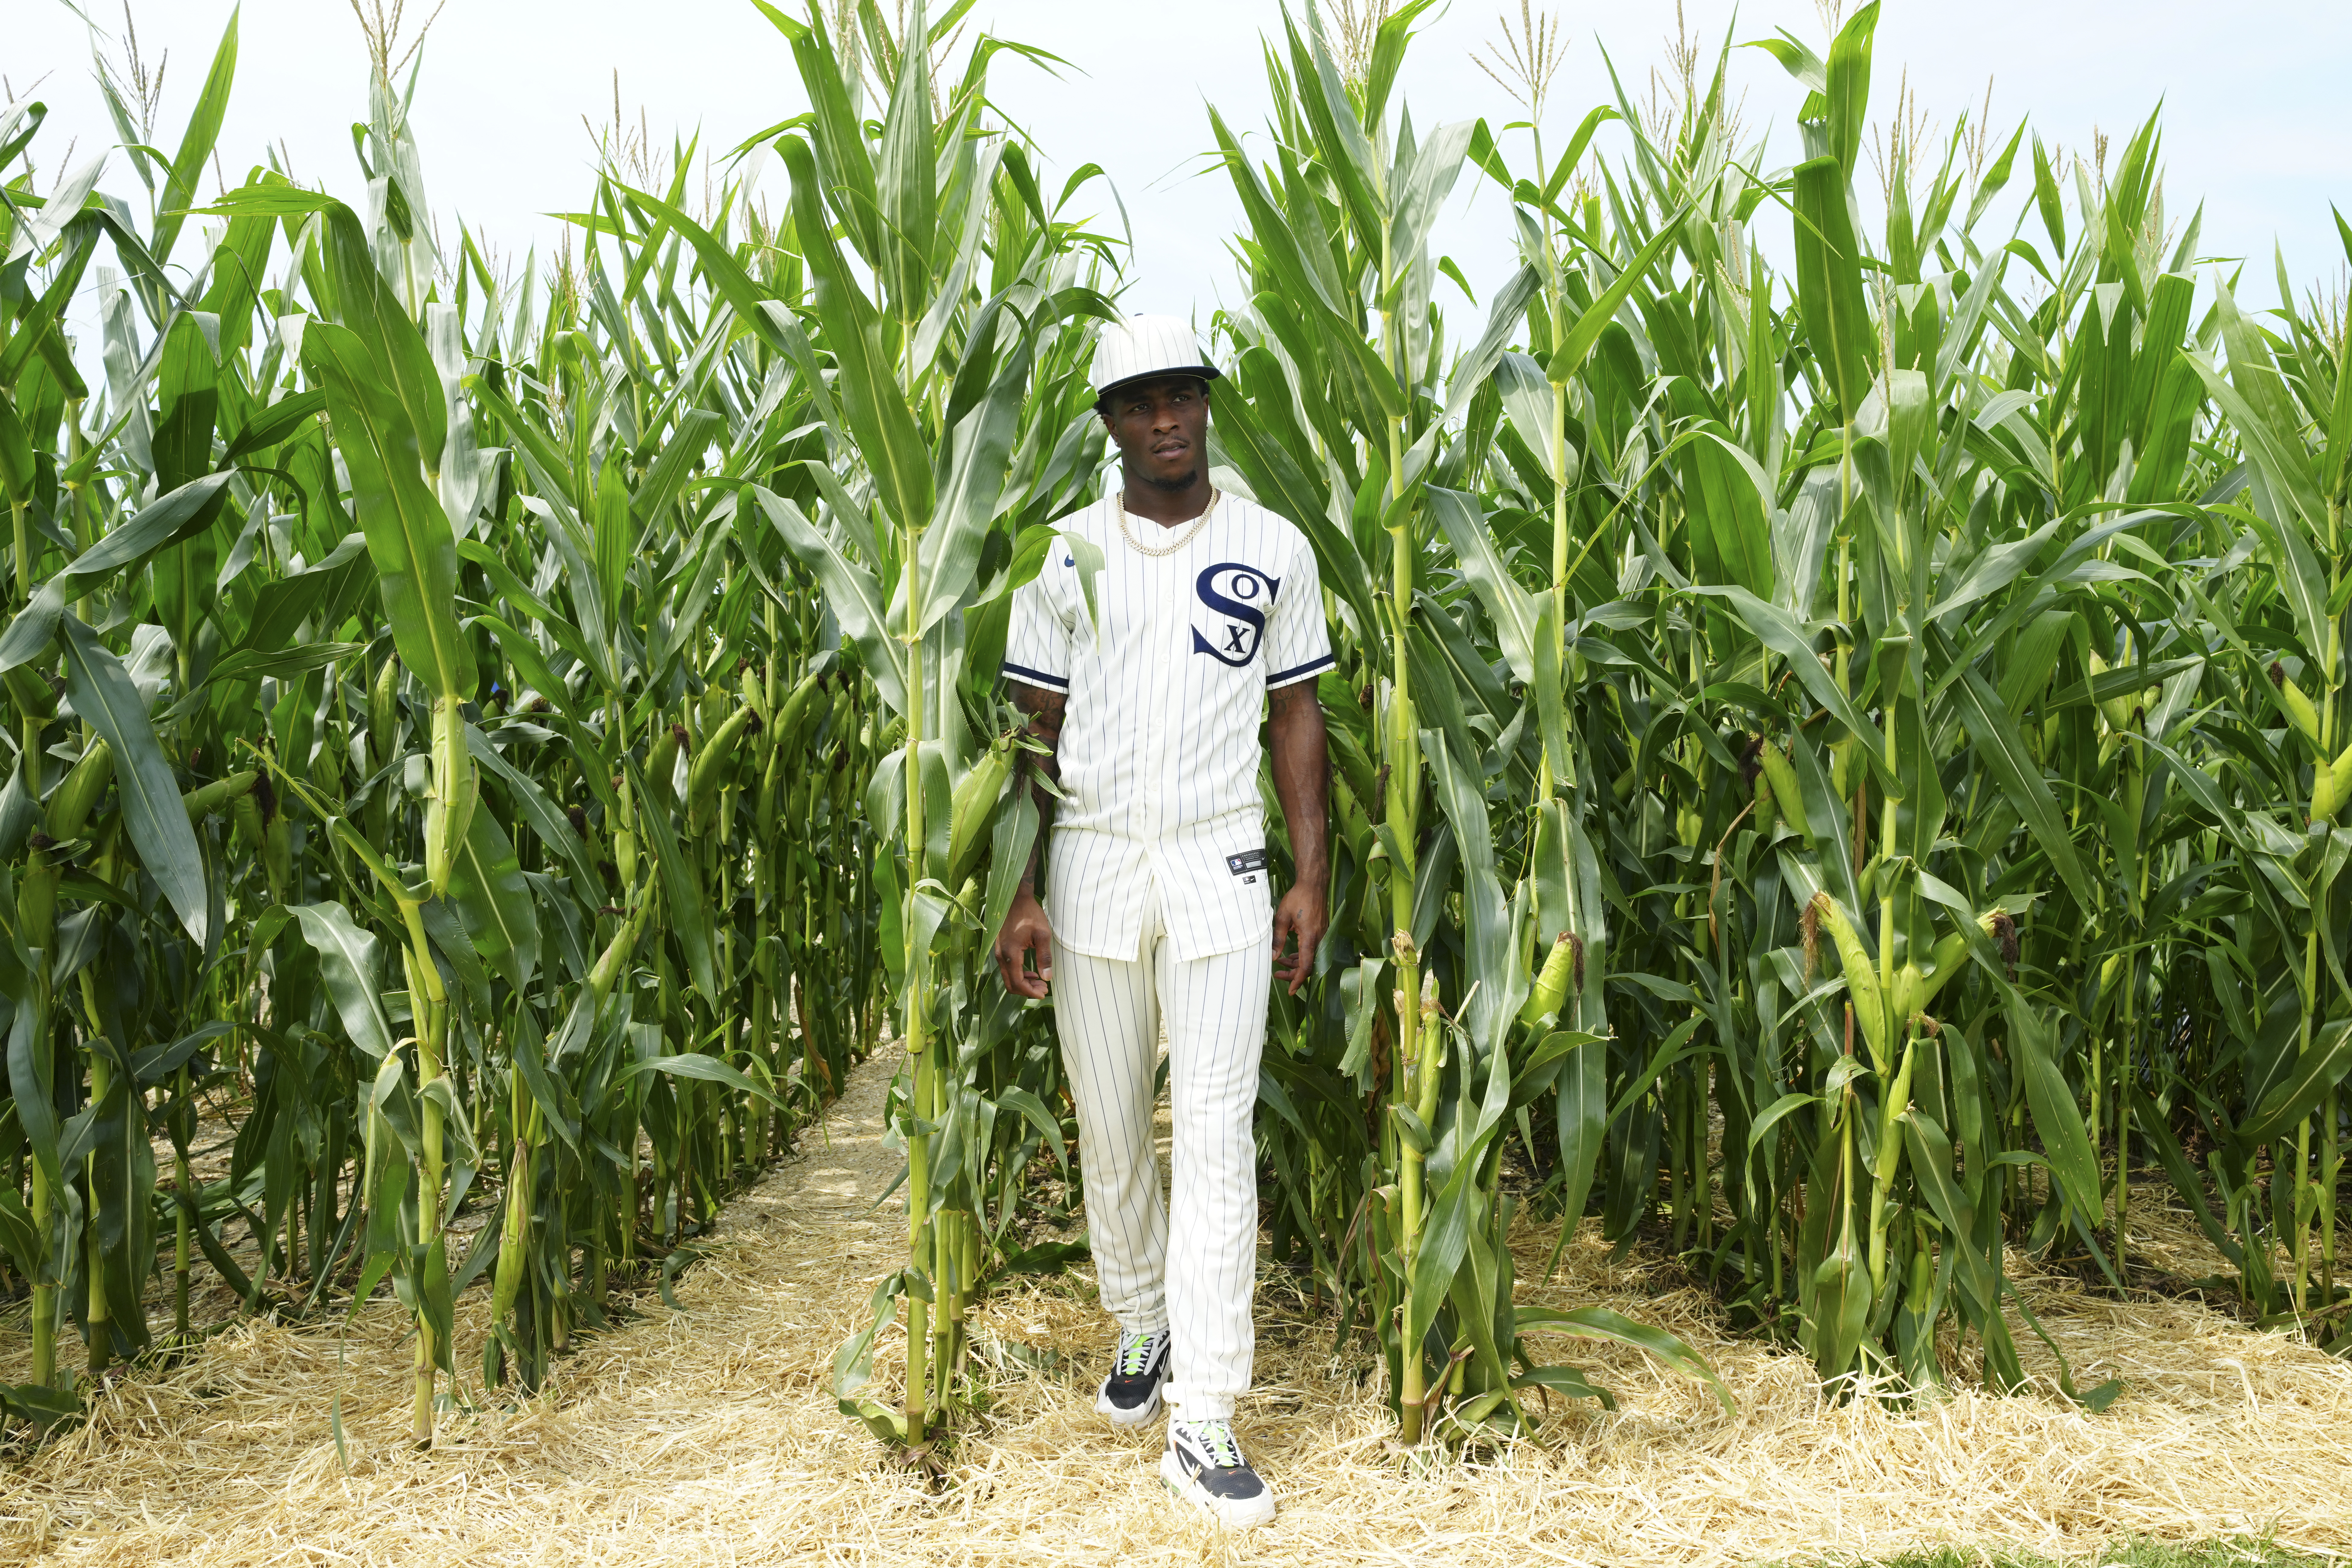 Video: Yankees, White Sox Appear in MLB's Inaugural 'Field of Dreams' Game in Iowa